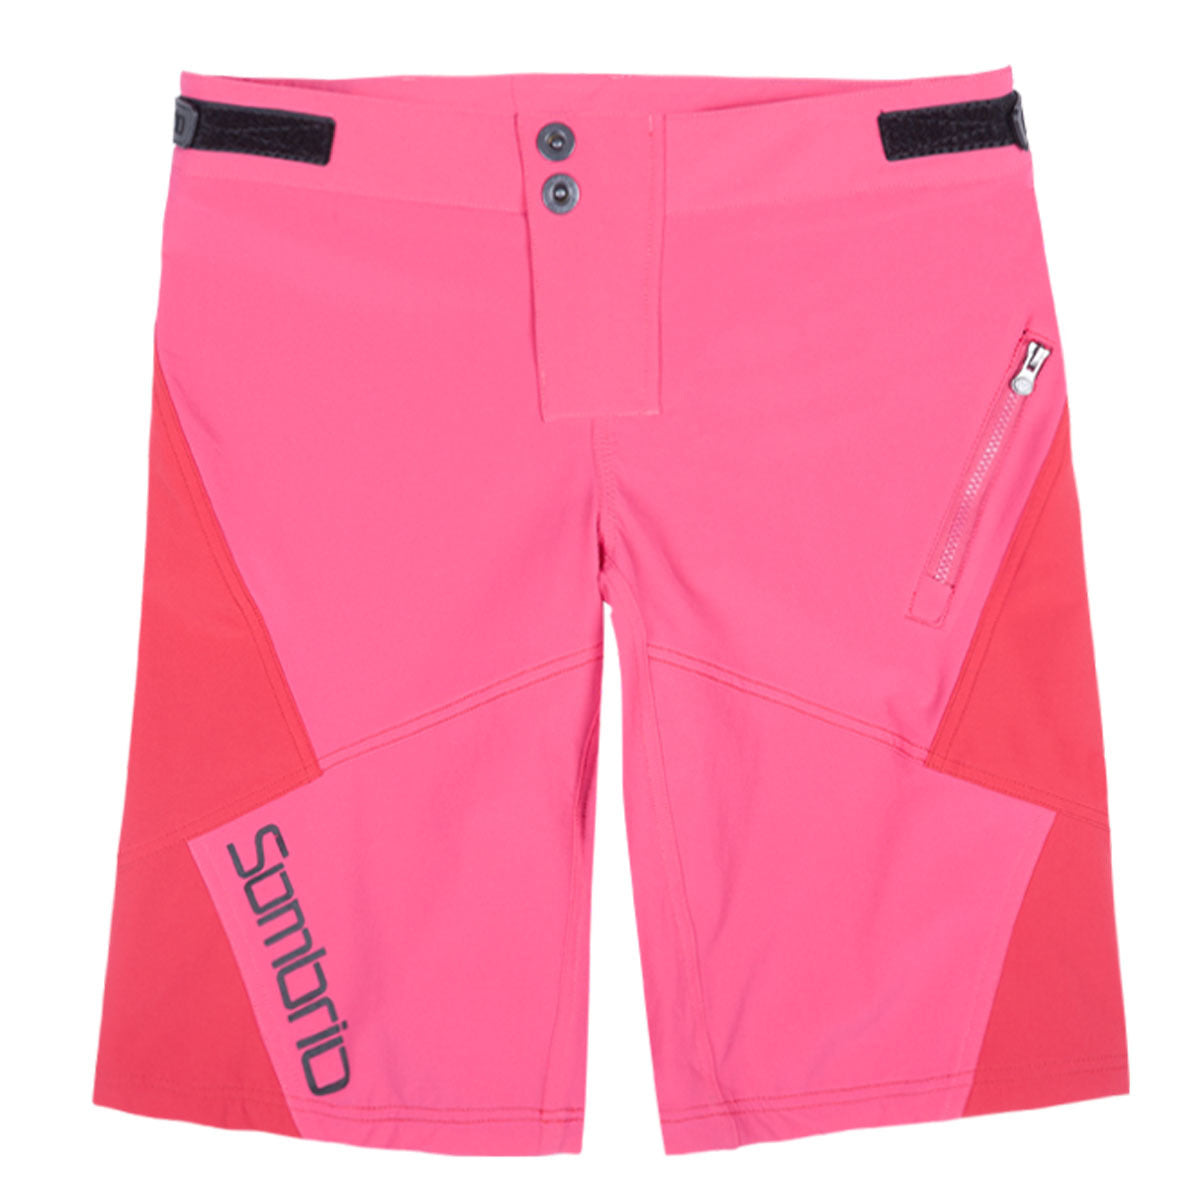 Sombrio Drift Women's Mountain Bike Mtb Baggy Cycling Shorts Pink Size L New-Misc-The Gear Attic